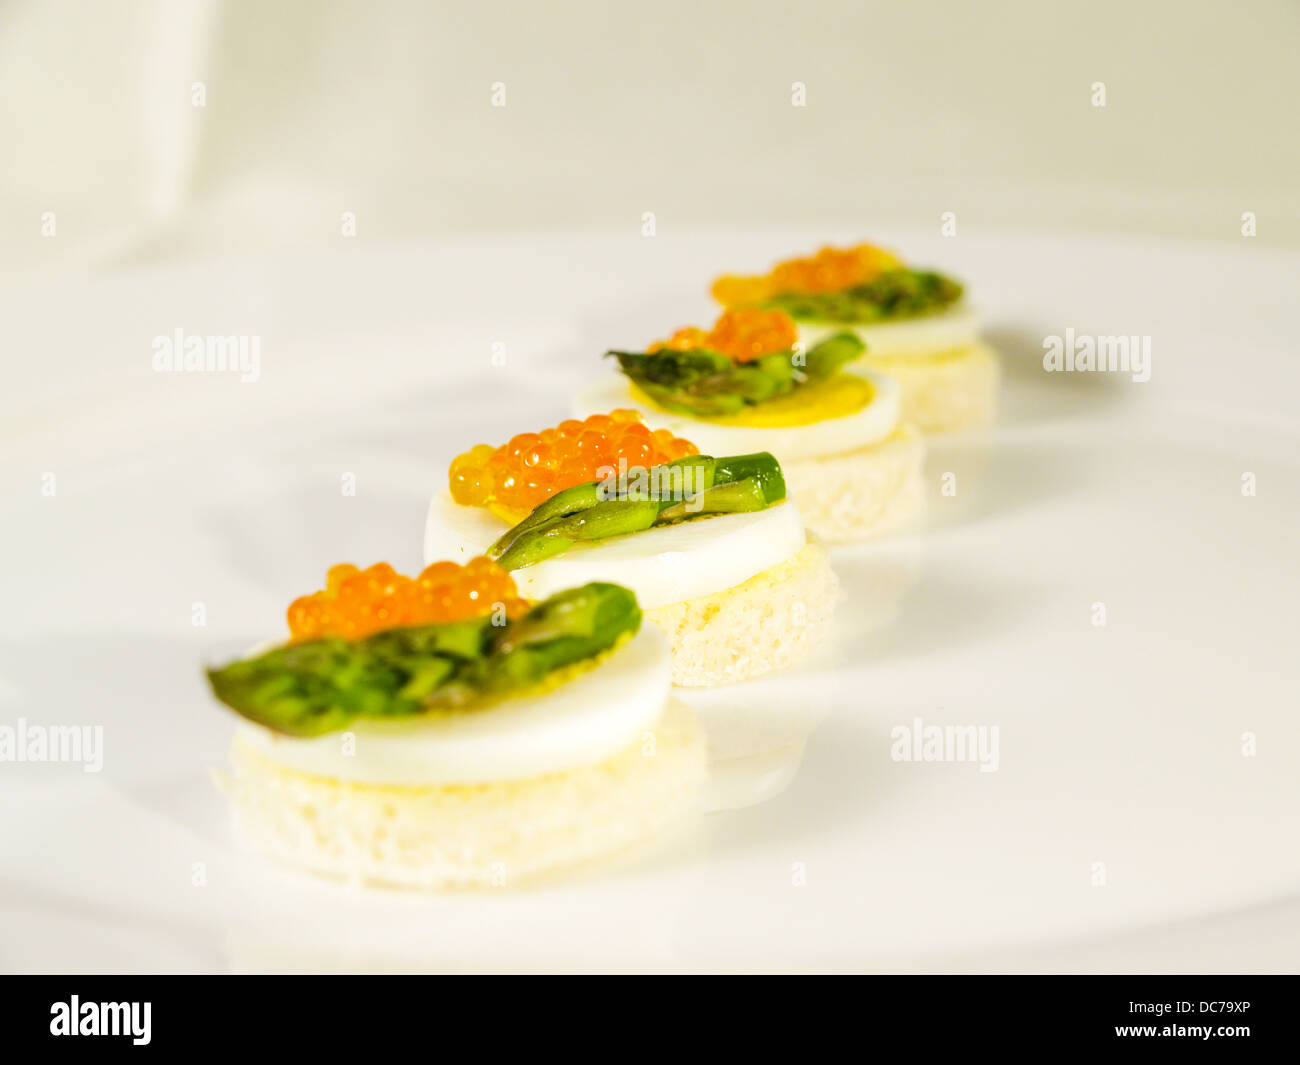 Kaviar Essen Essen Canape Mit Kaviar Spargel Ei Stock Photo 59168446 Alamy